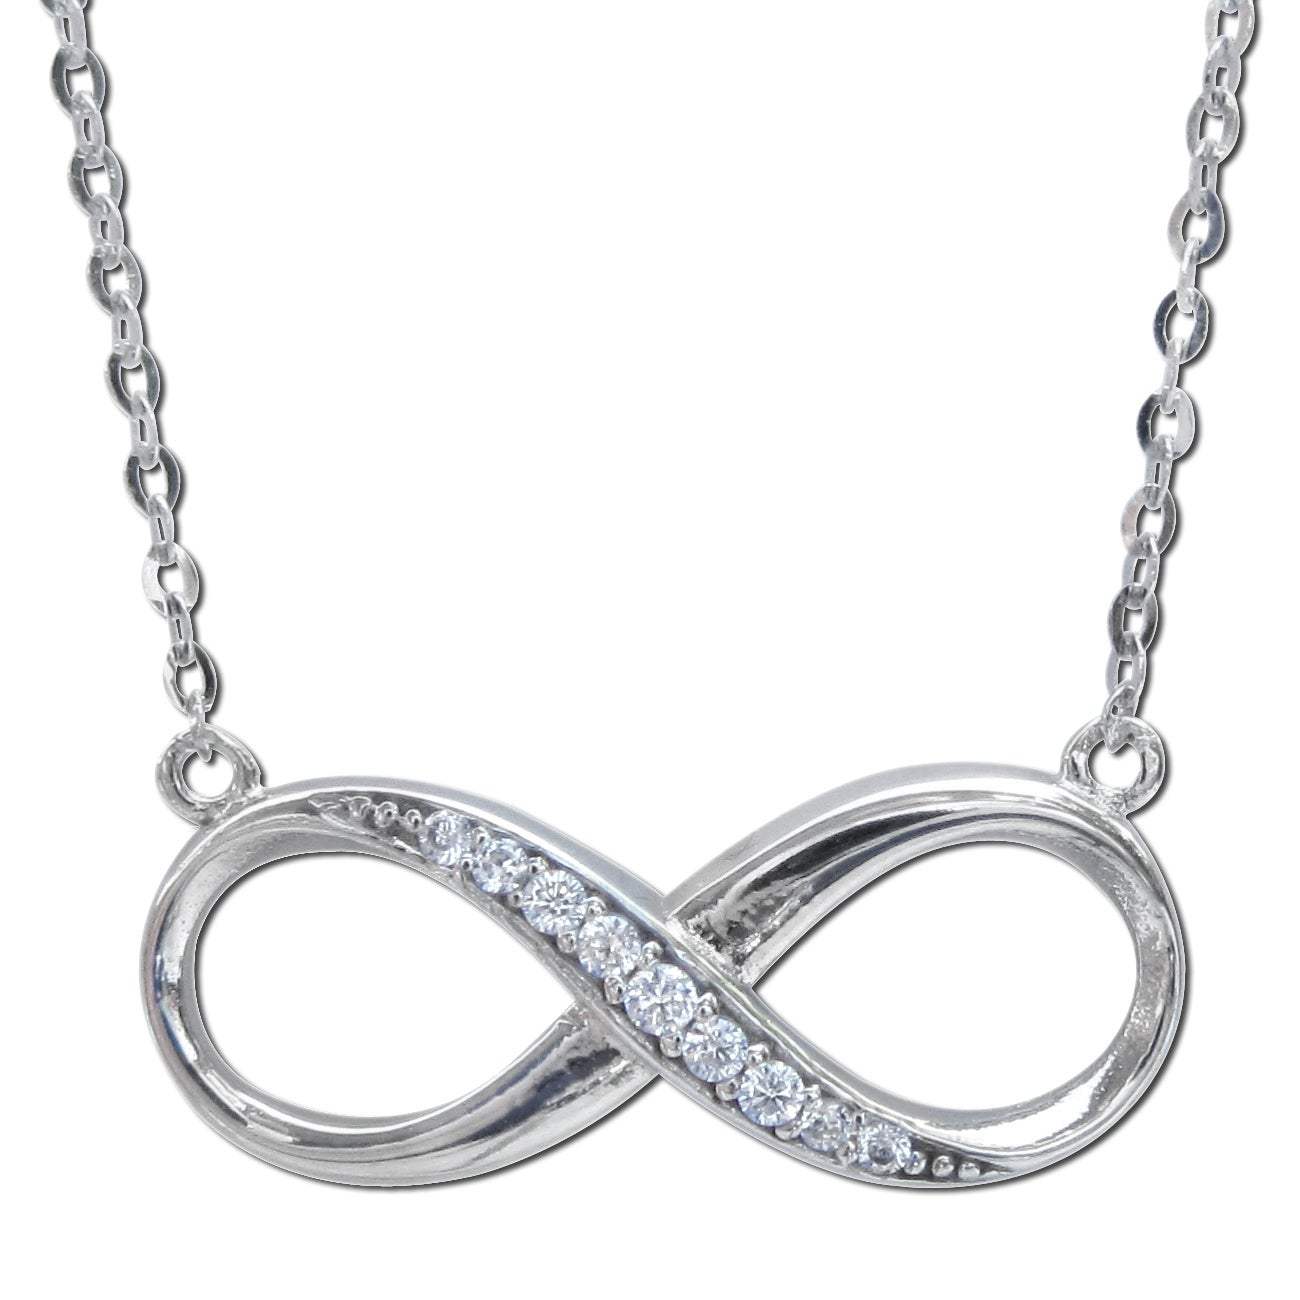 Shop 14k White Gold Cubic Zirconia Infinity Symbol Floating Charm